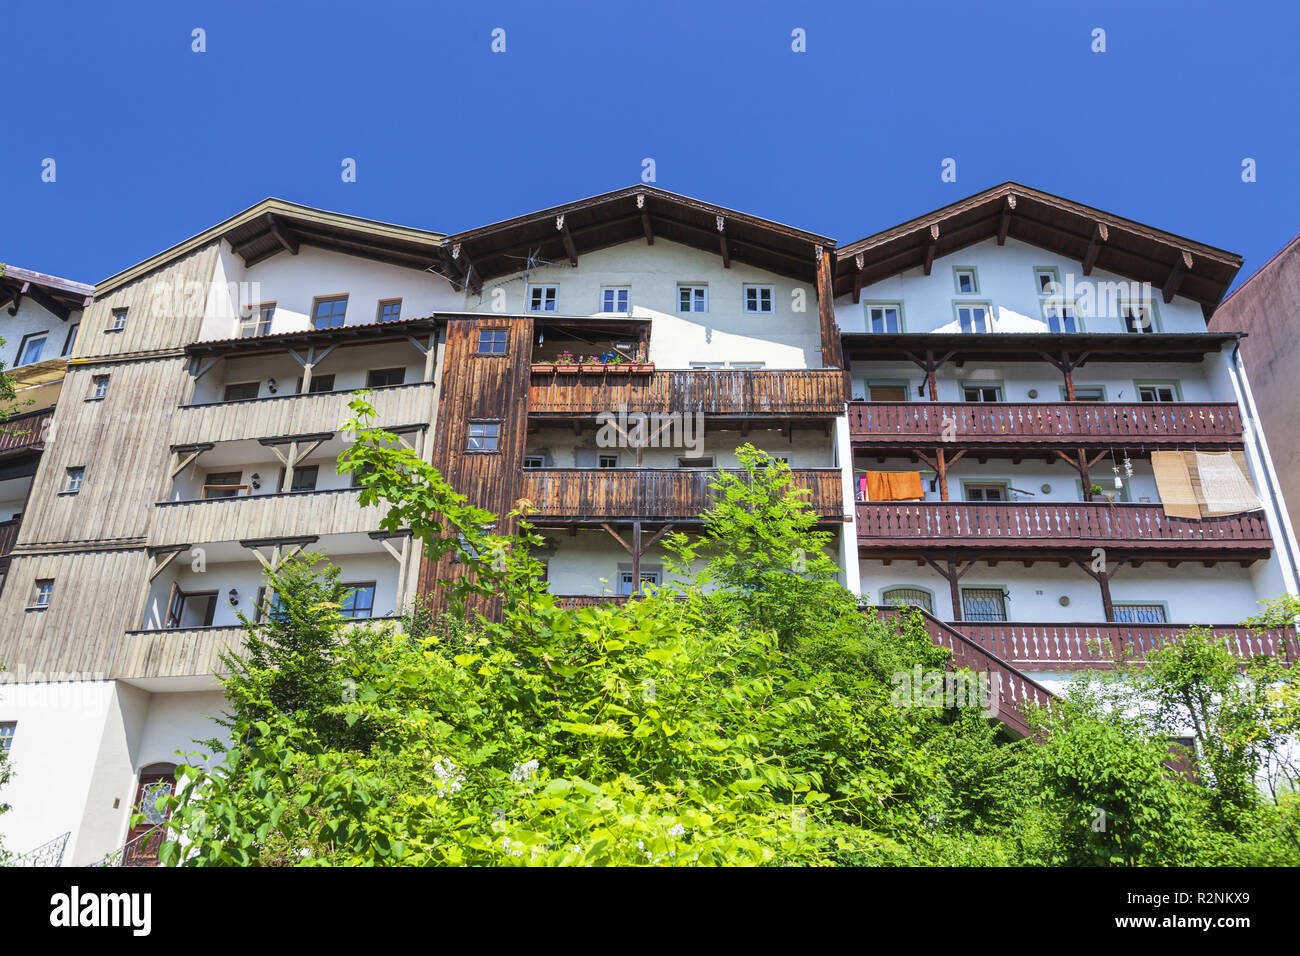 Trostberger Organs, Houses on the Alz in Trostberg, Chiemgau, Upper Bavaria, Bavaria, Southern Germany, Germany, Europe - Stock Image